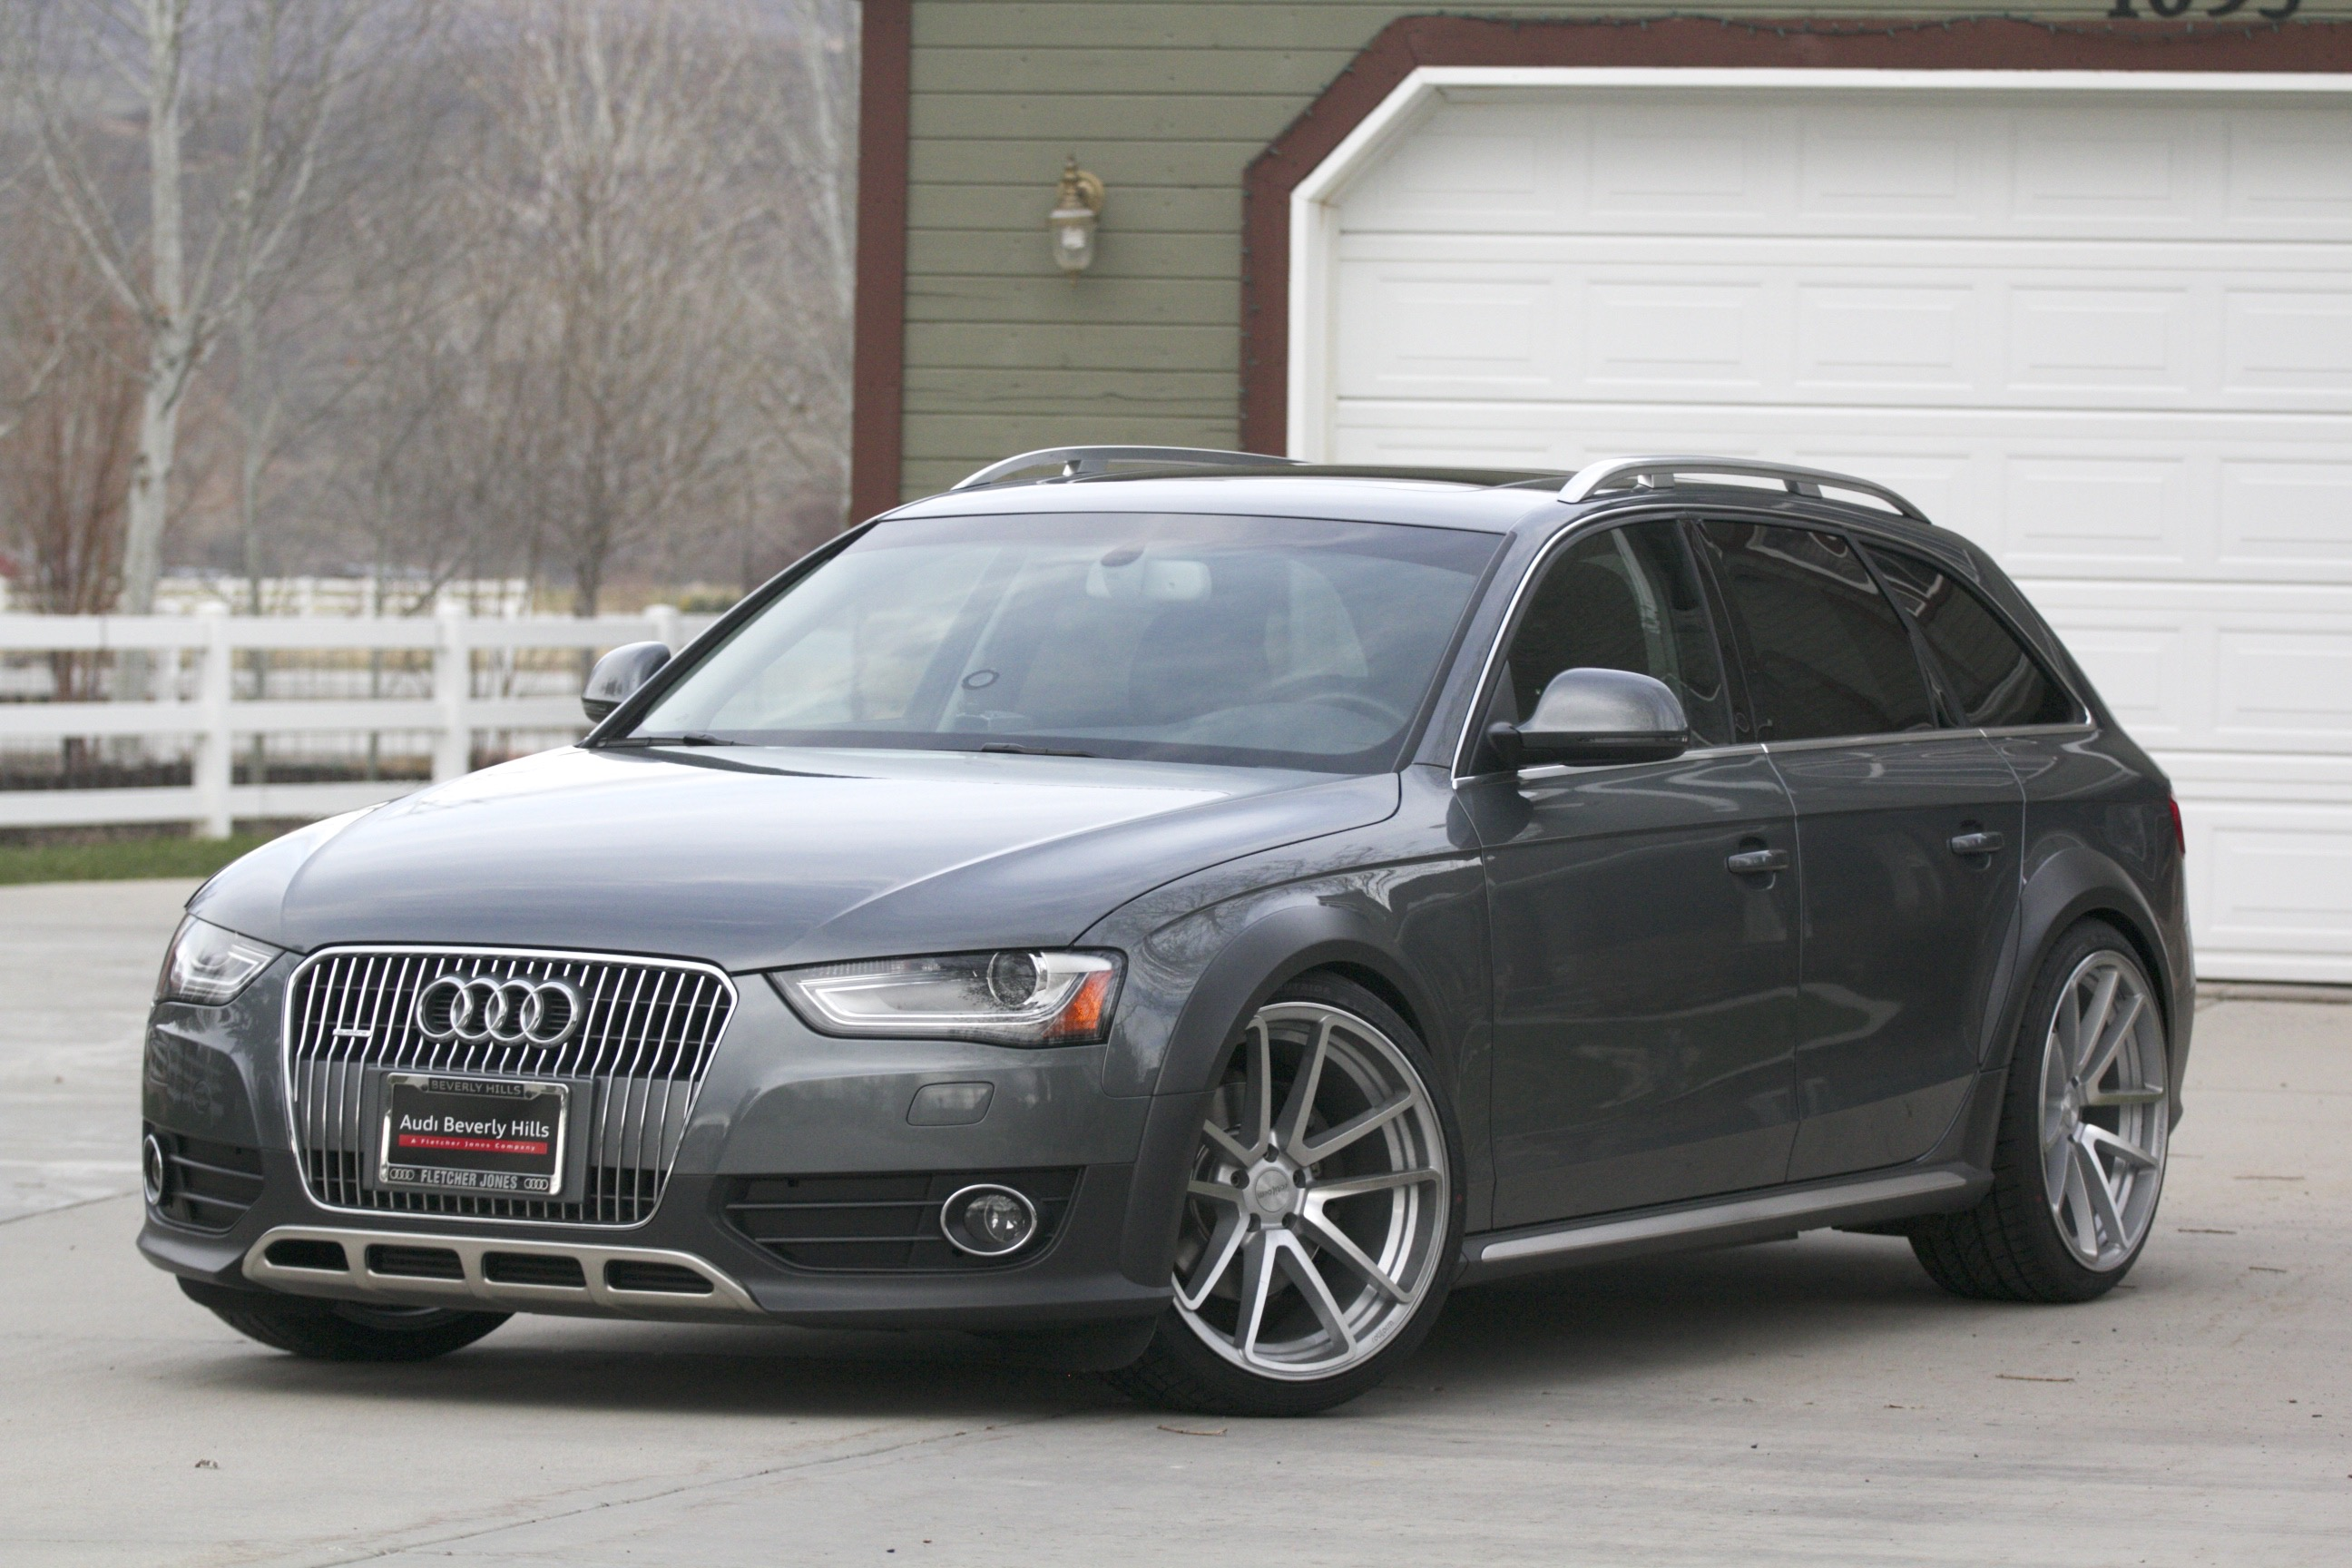 Audi s4 0 to 60 2014 17